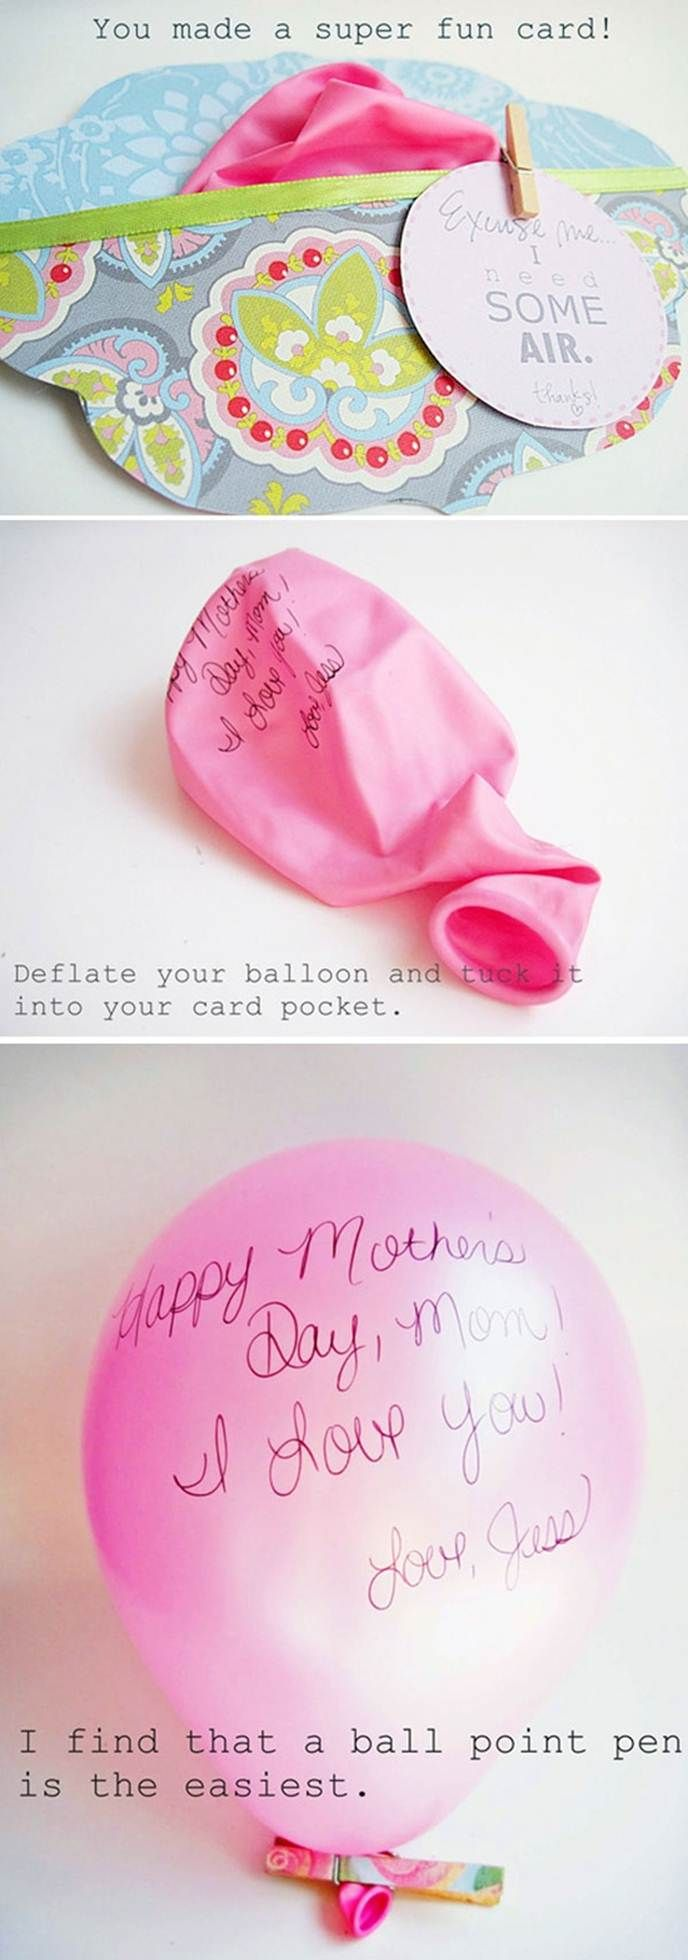 351 best Mother's Day images on Pinterest